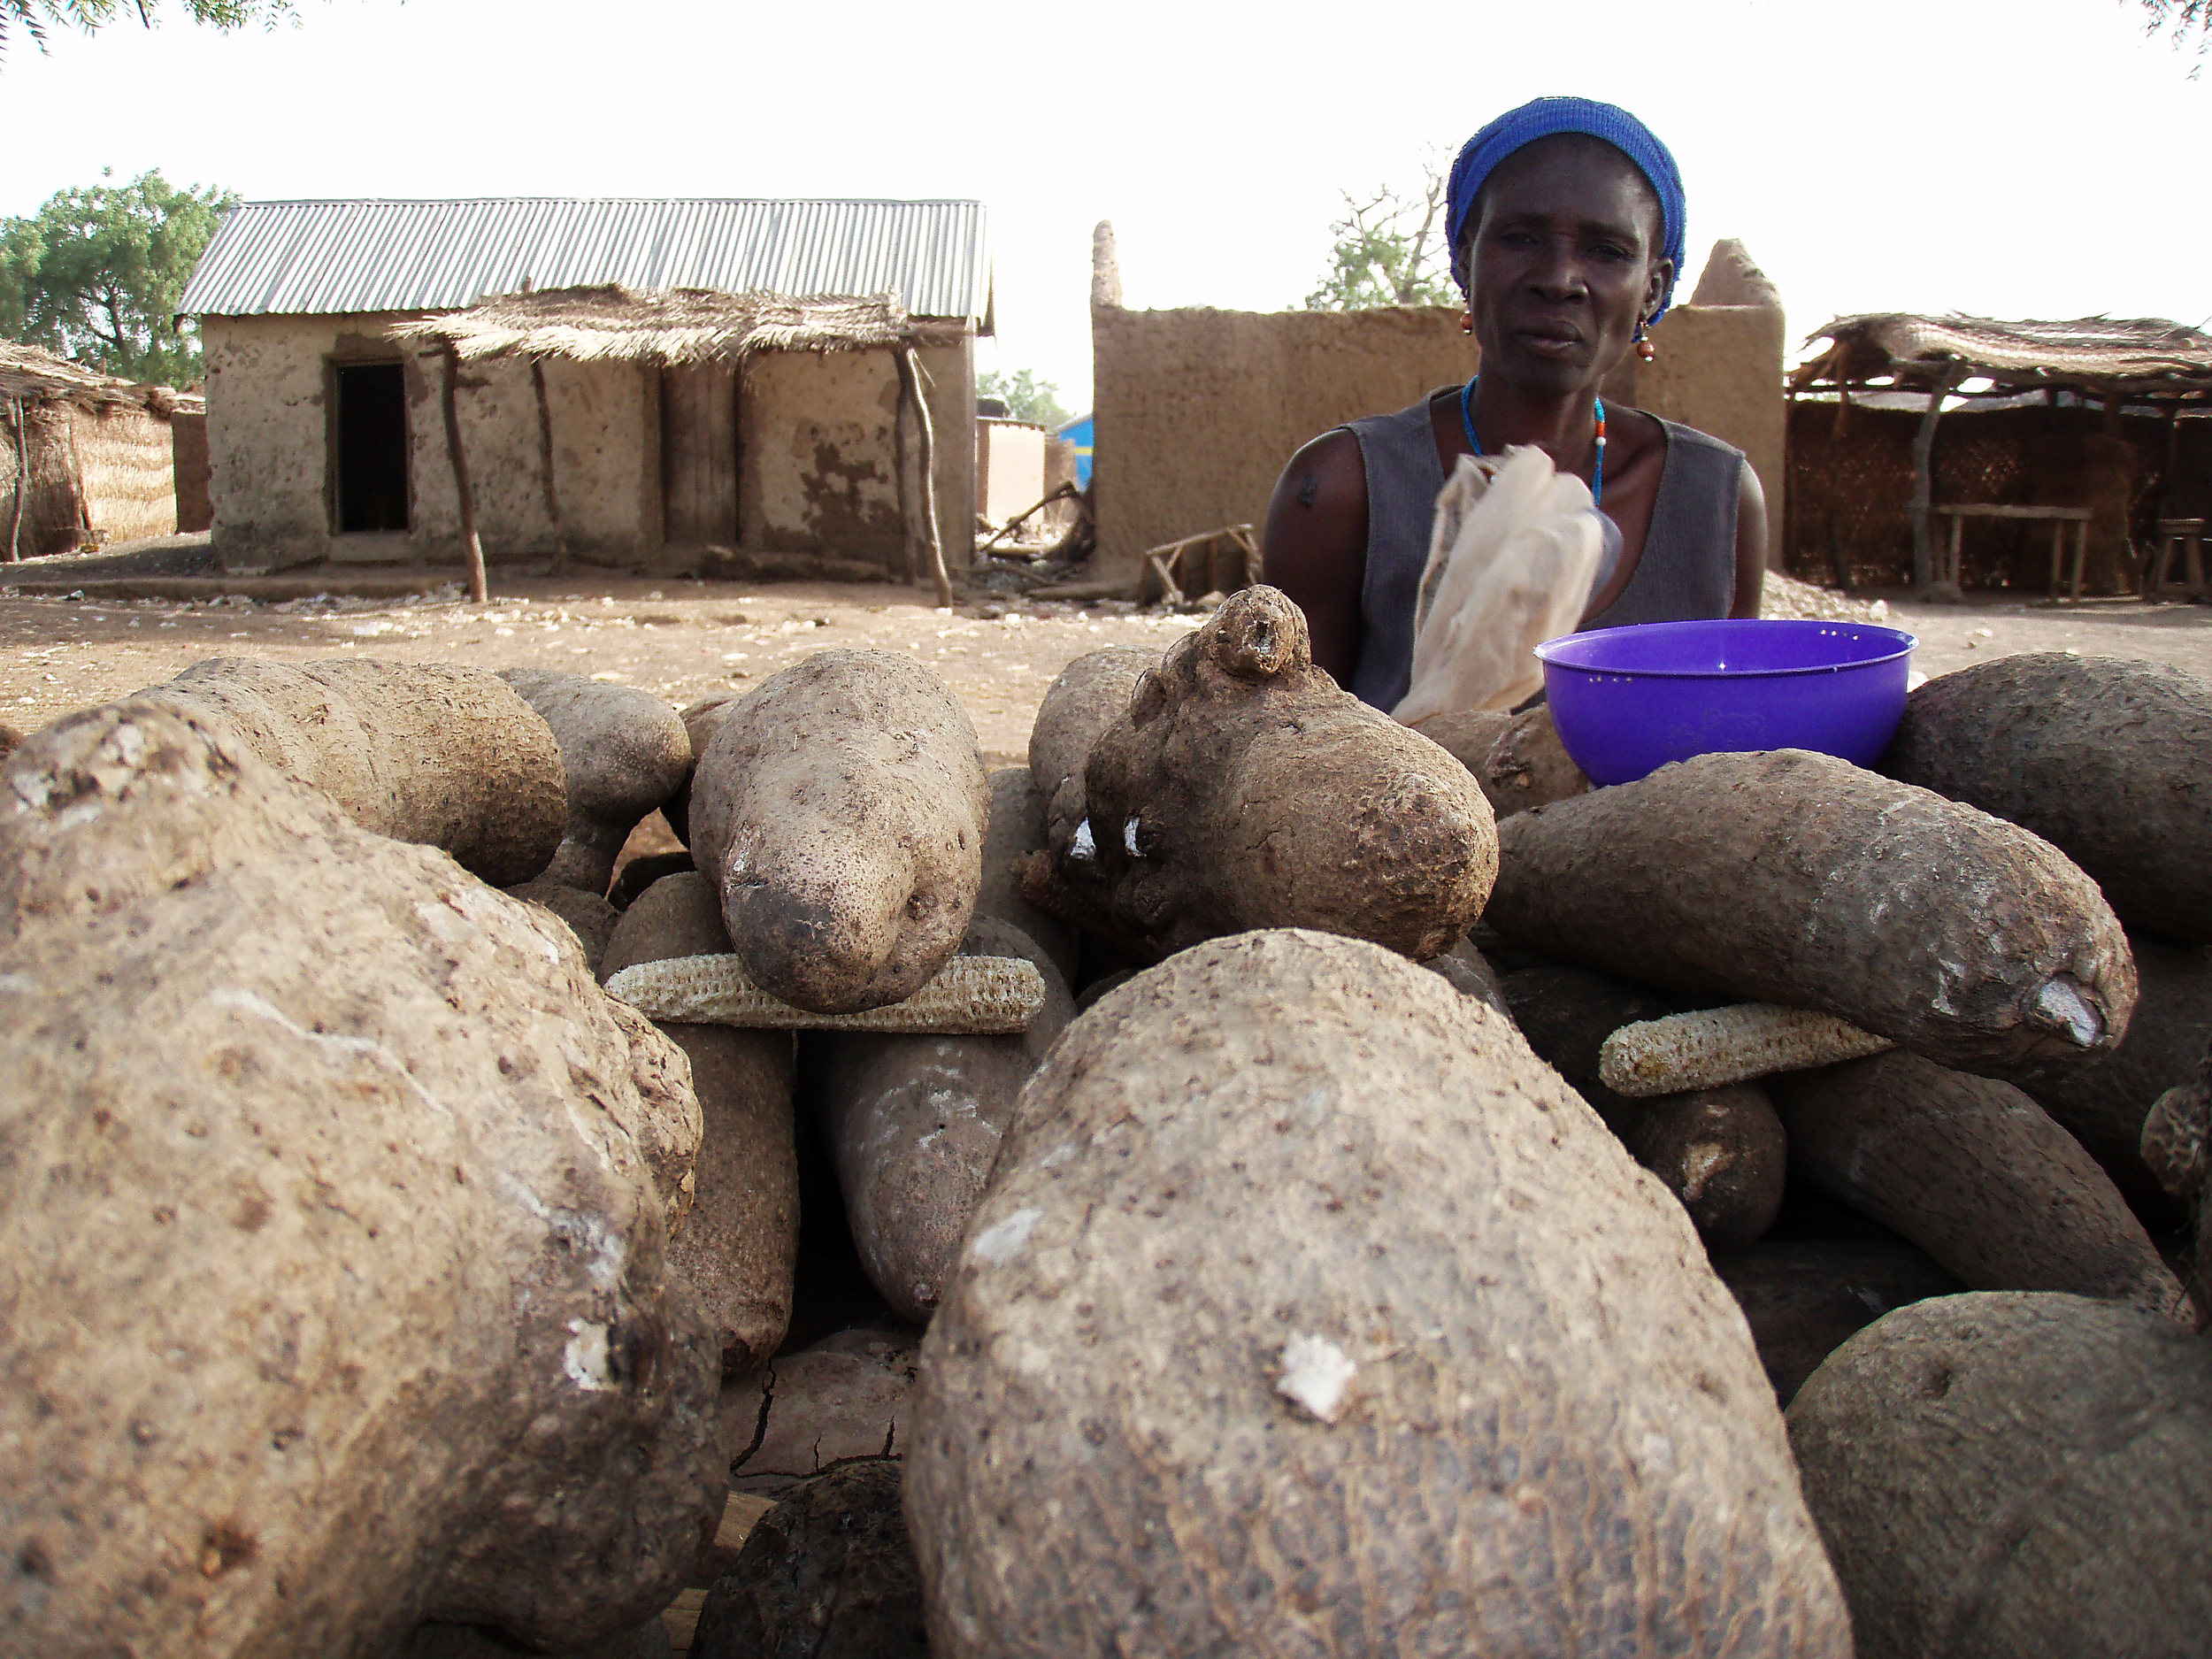 A woman sells yams along the highway in Sagbiebou, in northern Togo.